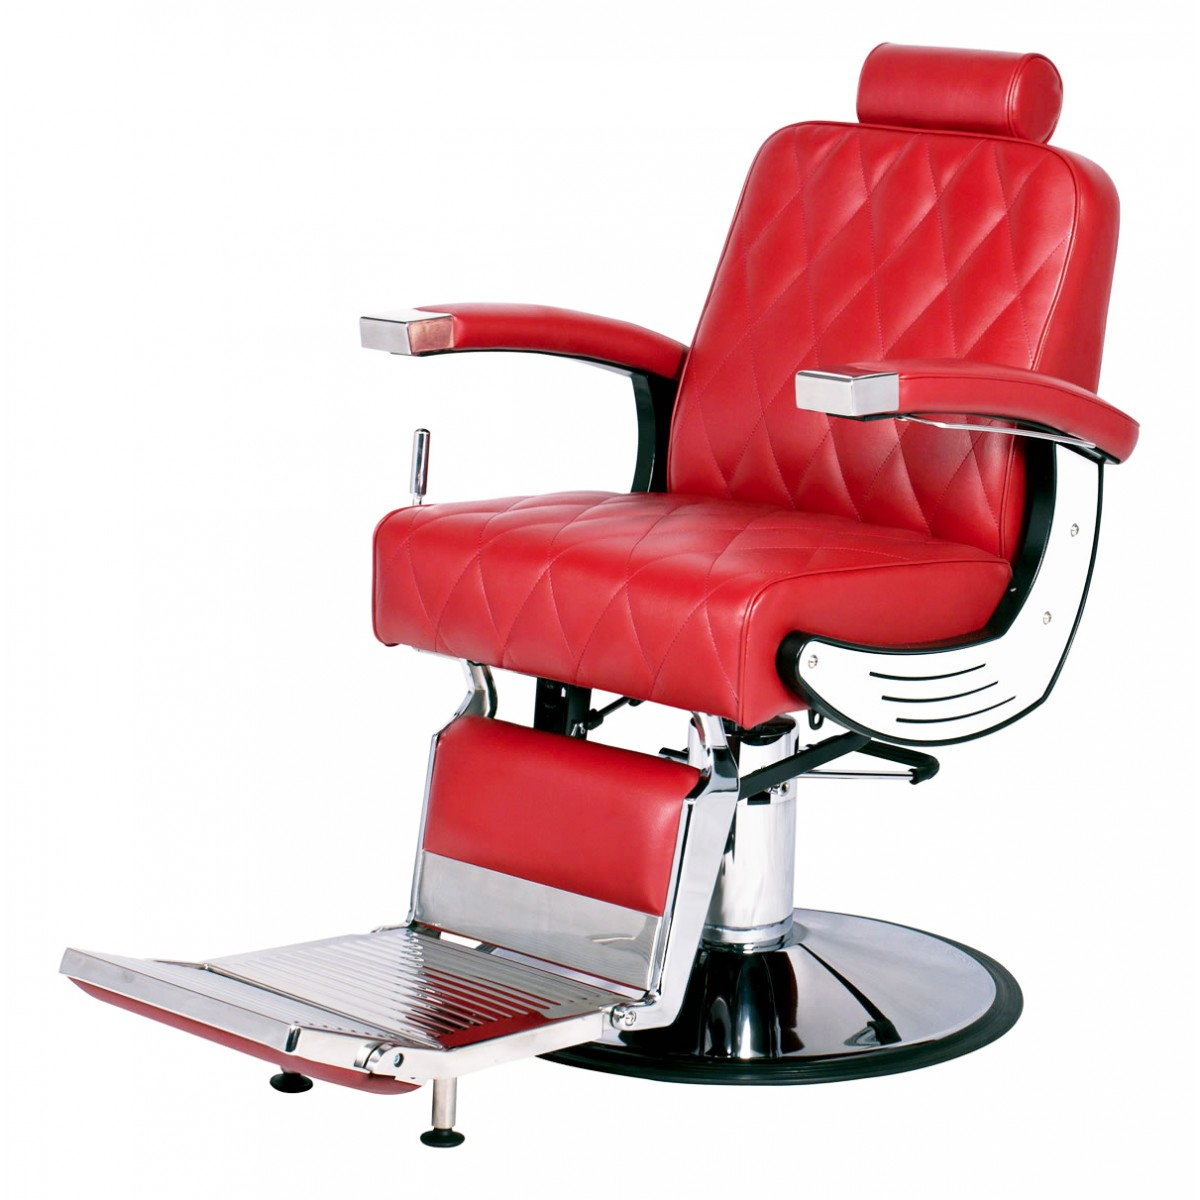 salon chairs for sale stressless chair similar quotbaron quot heavy duty barber shop